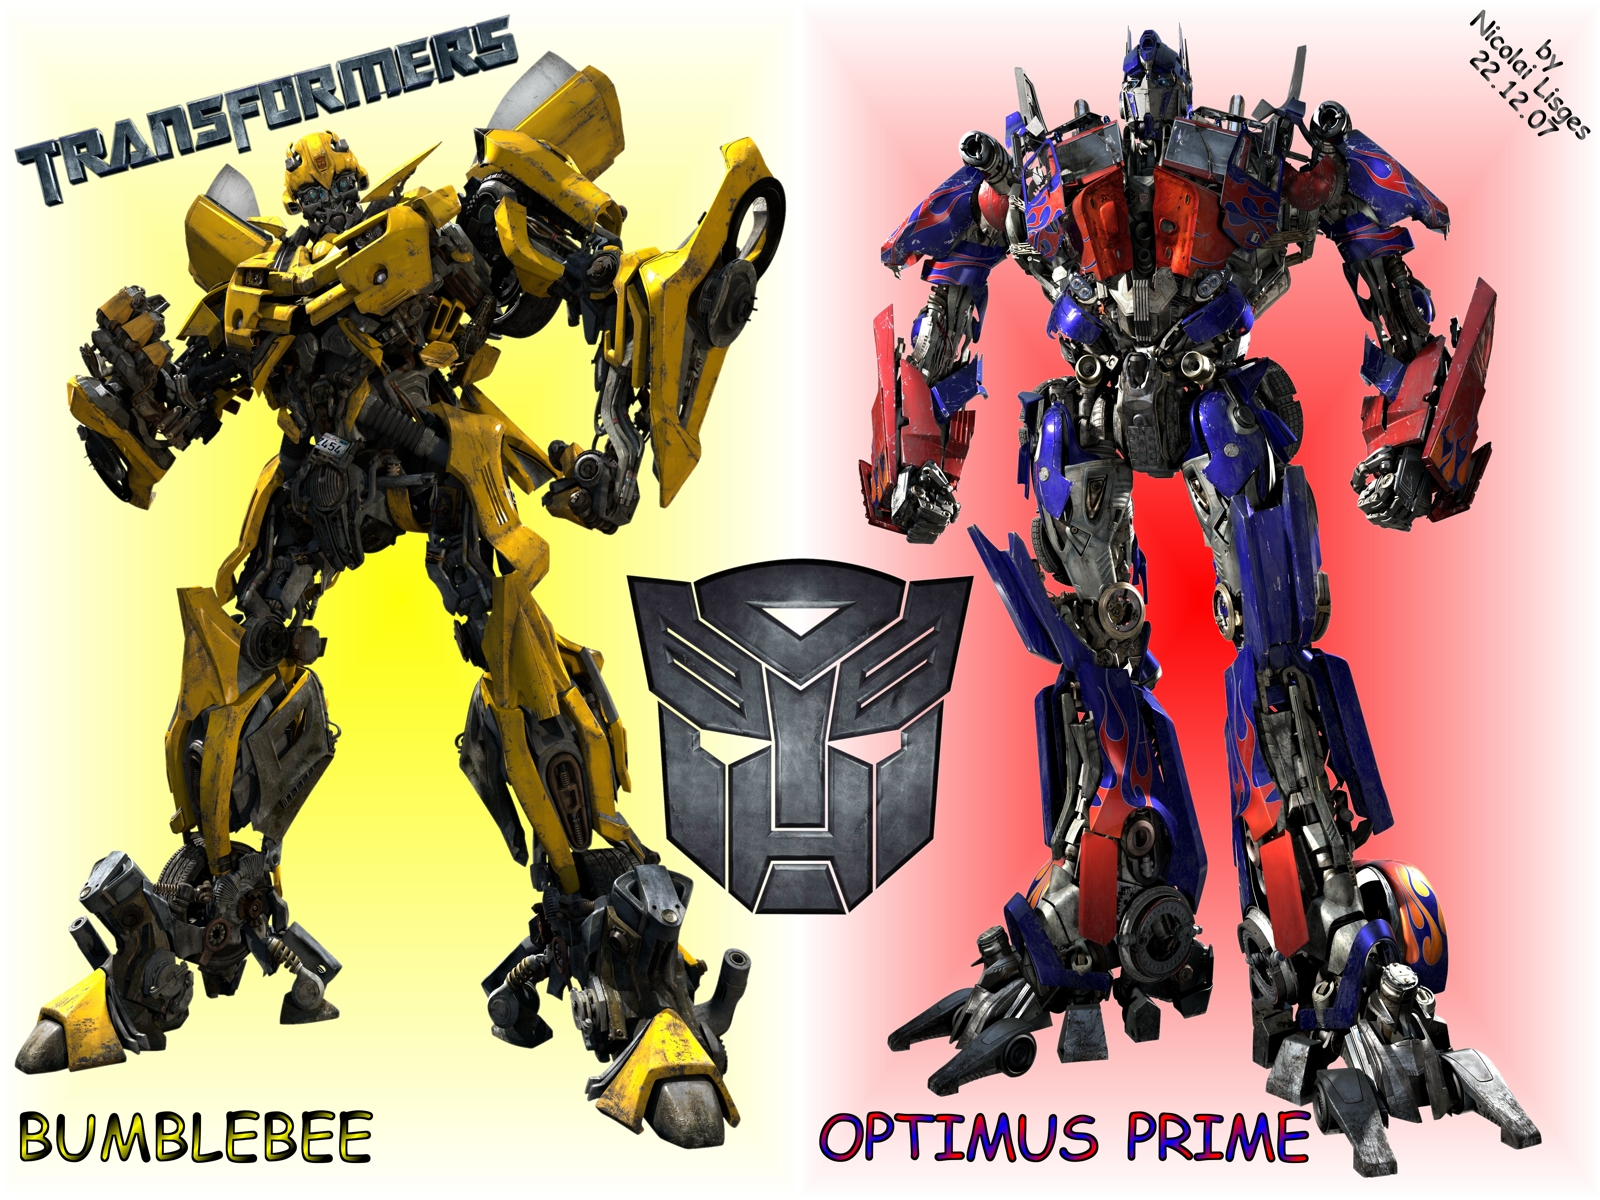 A tribute to Optimus and Bumblebee